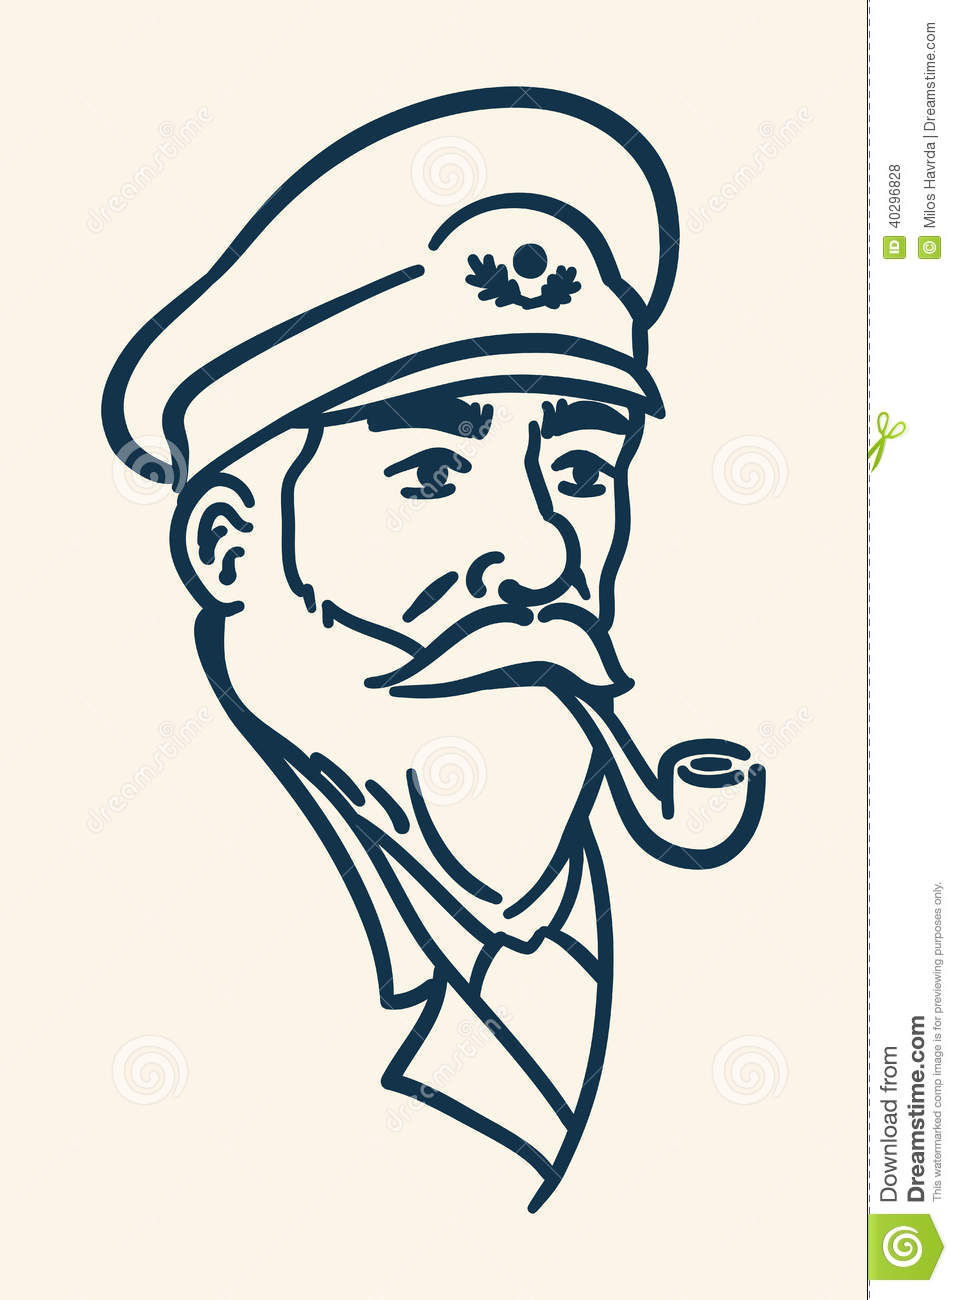 Bearded Boat Captain Smoking Pipe Illustration Stock Vector - Image: 40296828